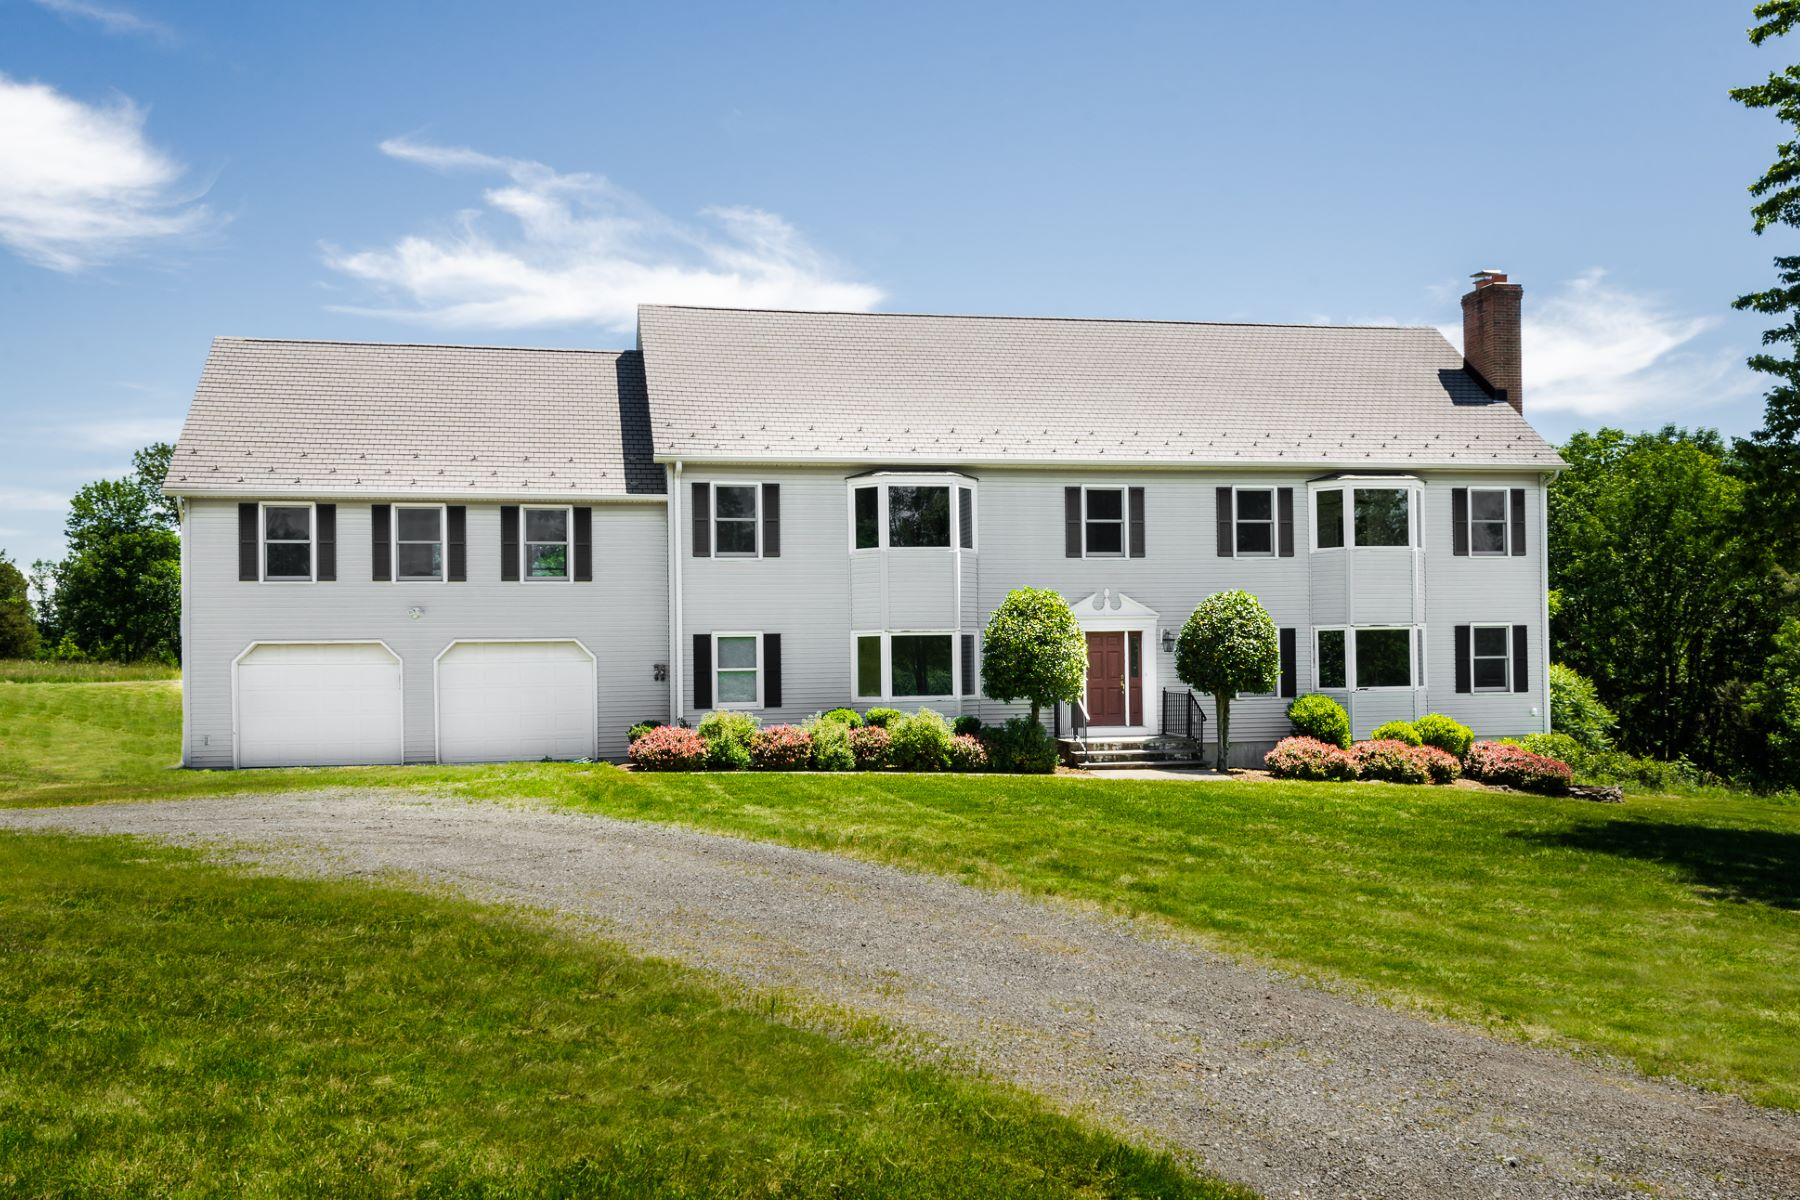 Single Family Home for Sale at So Many Possibiliities At This Fantastic Homestead - West Amwell Township 1728 Linvale Harbourton Road Lambertville, New Jersey 08530 United States